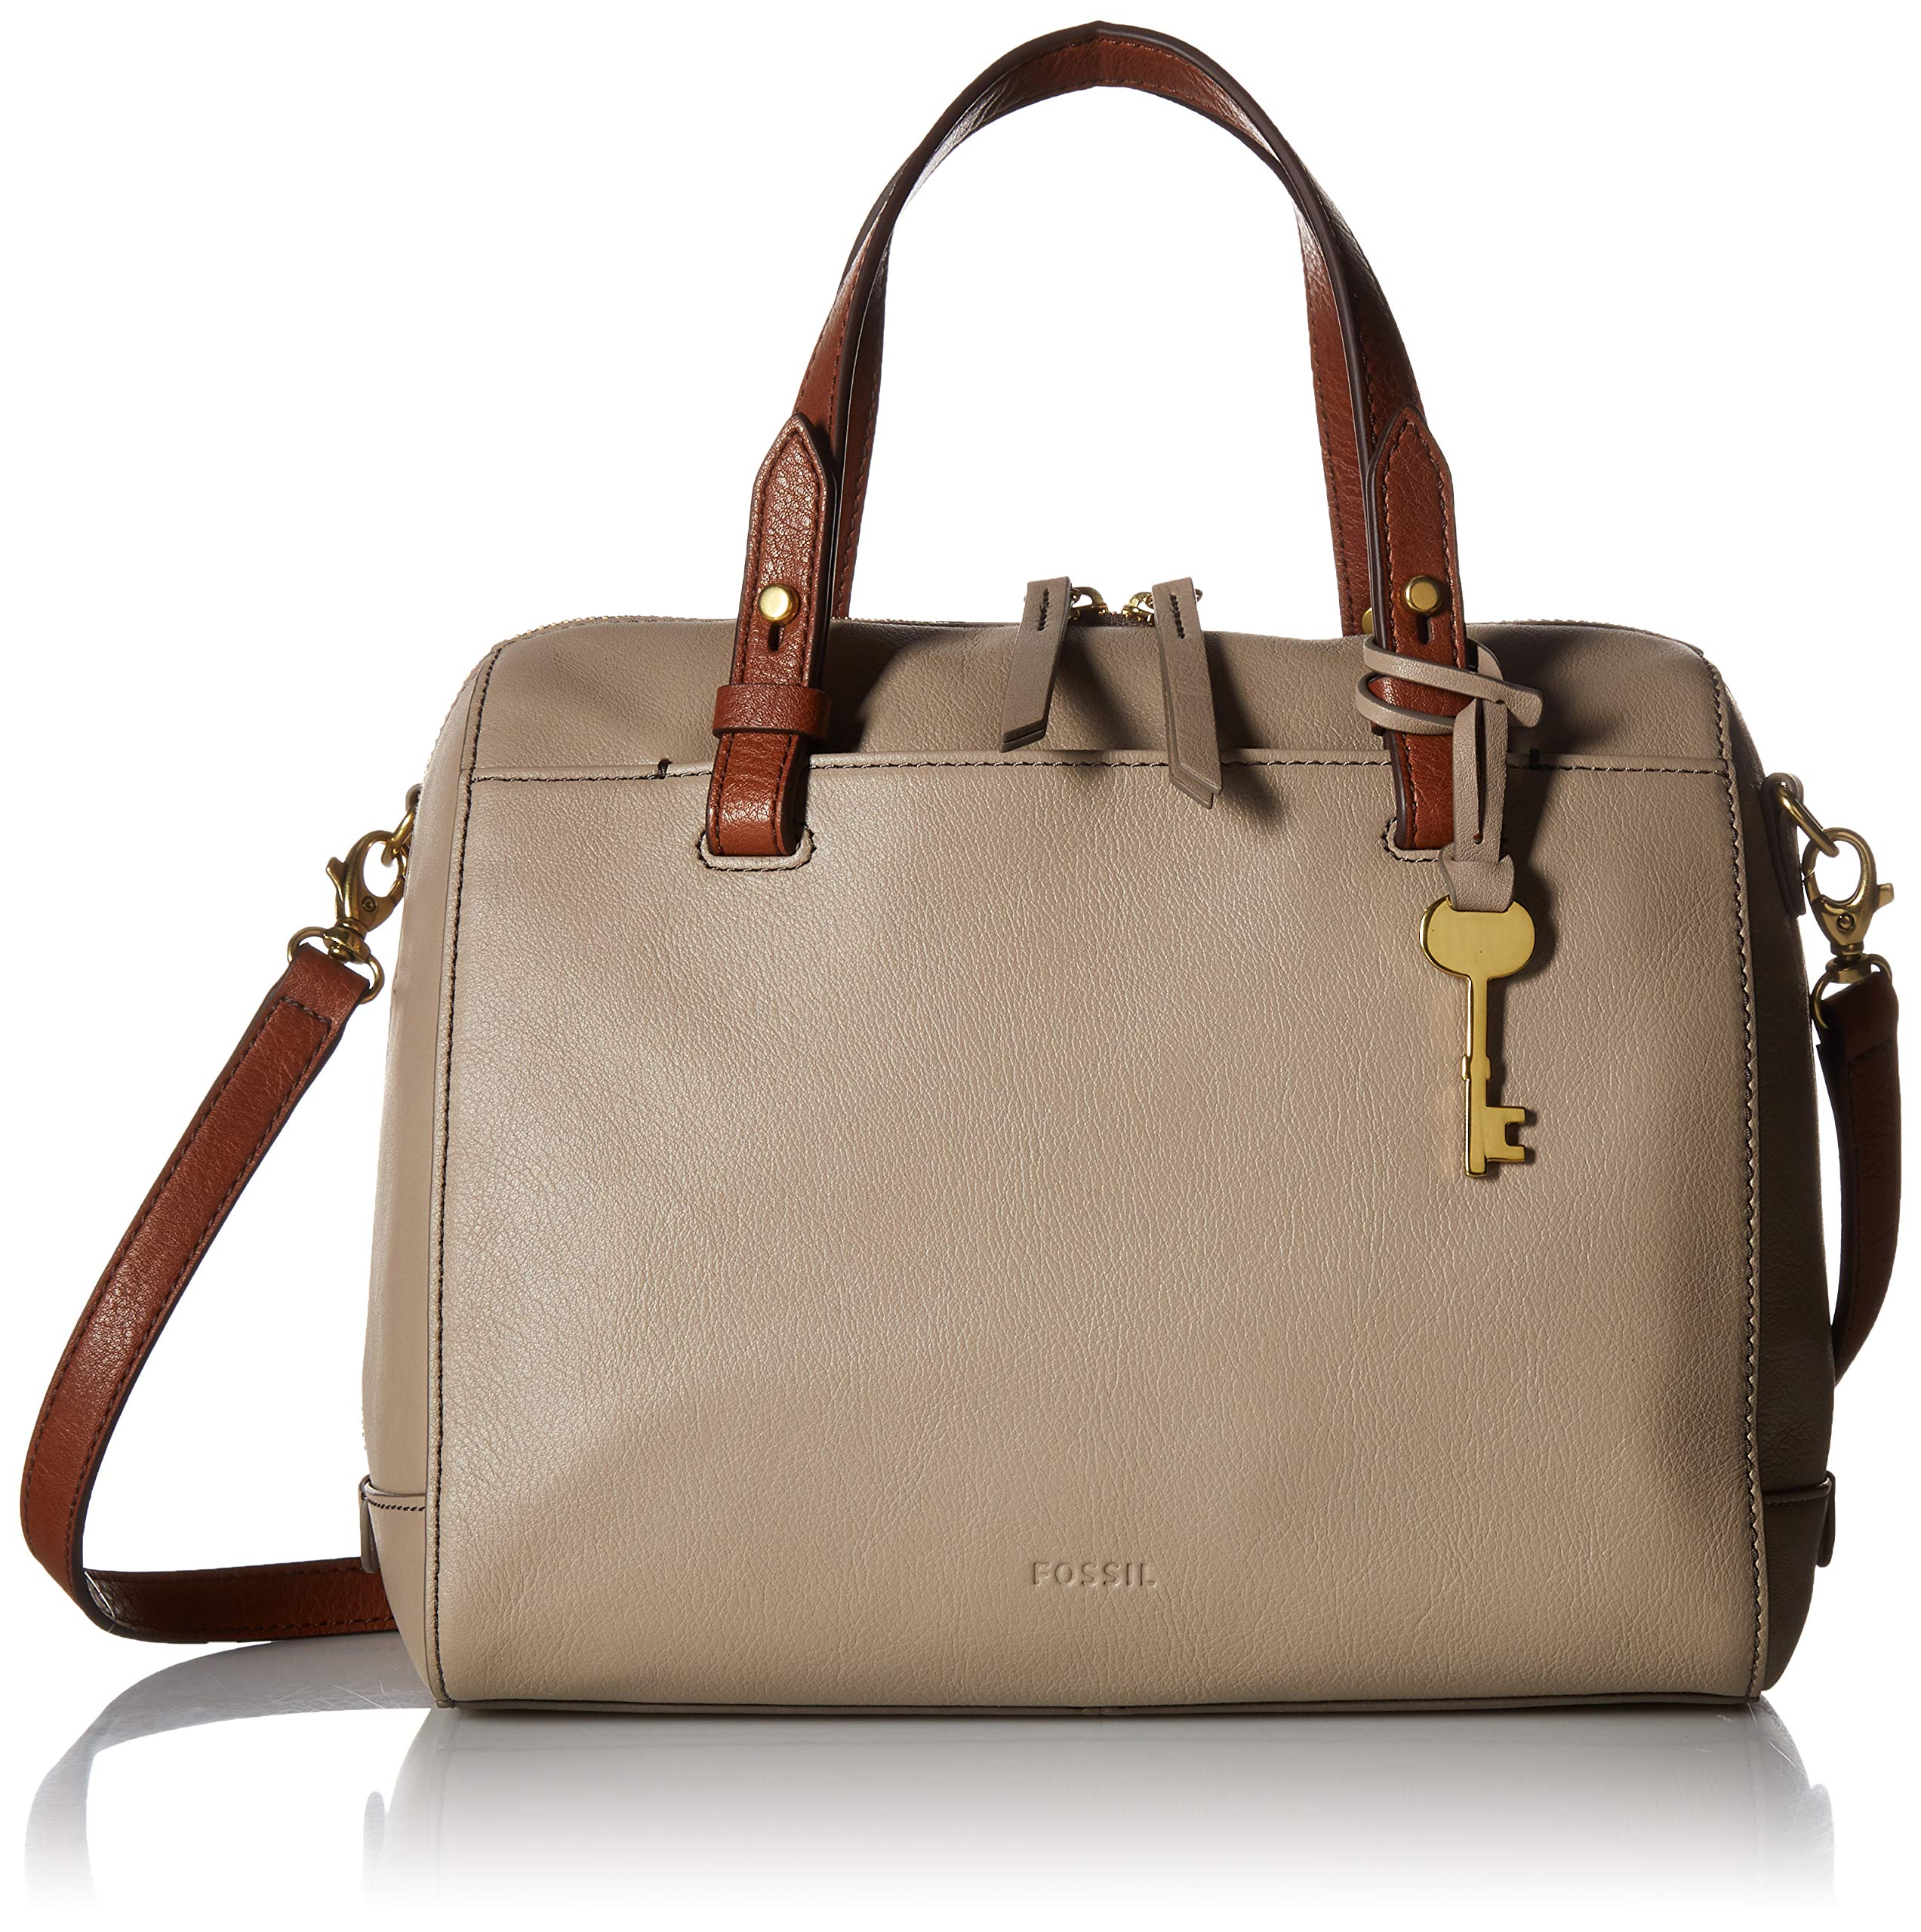 Fossil Rachel Satchel Light Taupe, One Size